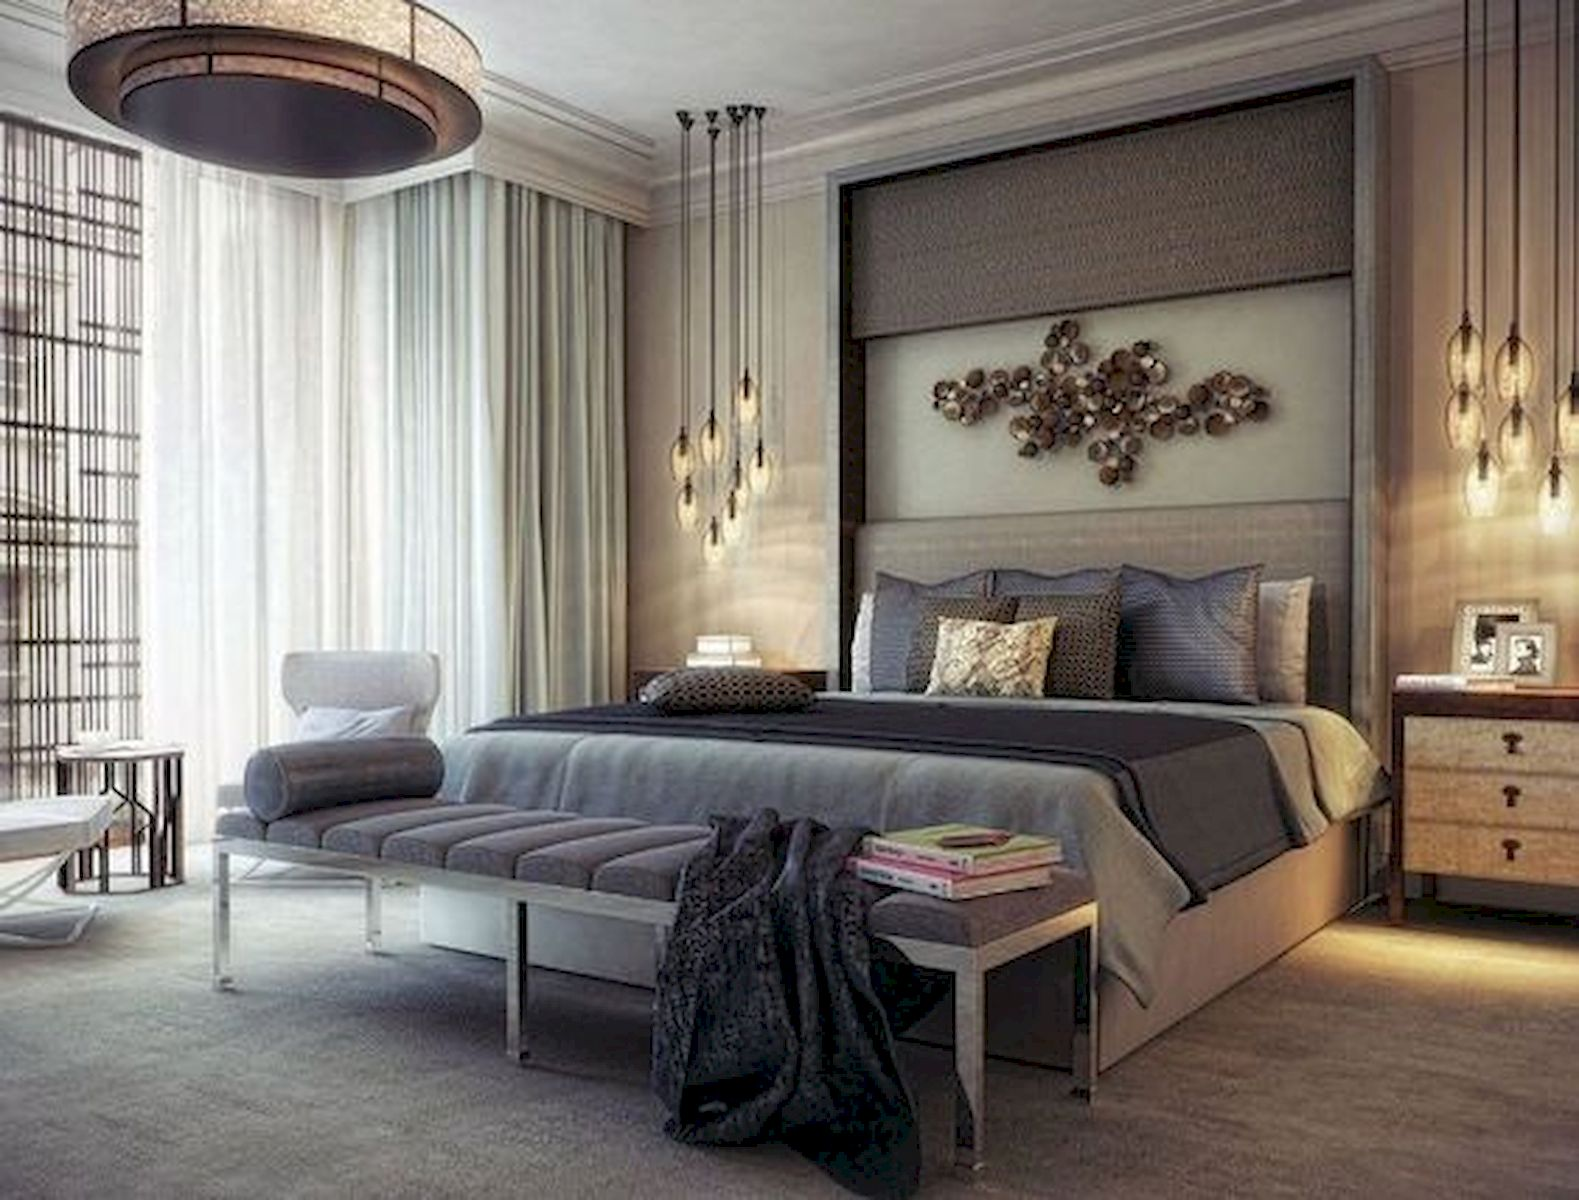 40 Incredible Modern Bedroom Design Ideas That Will Be Relax Place (39)